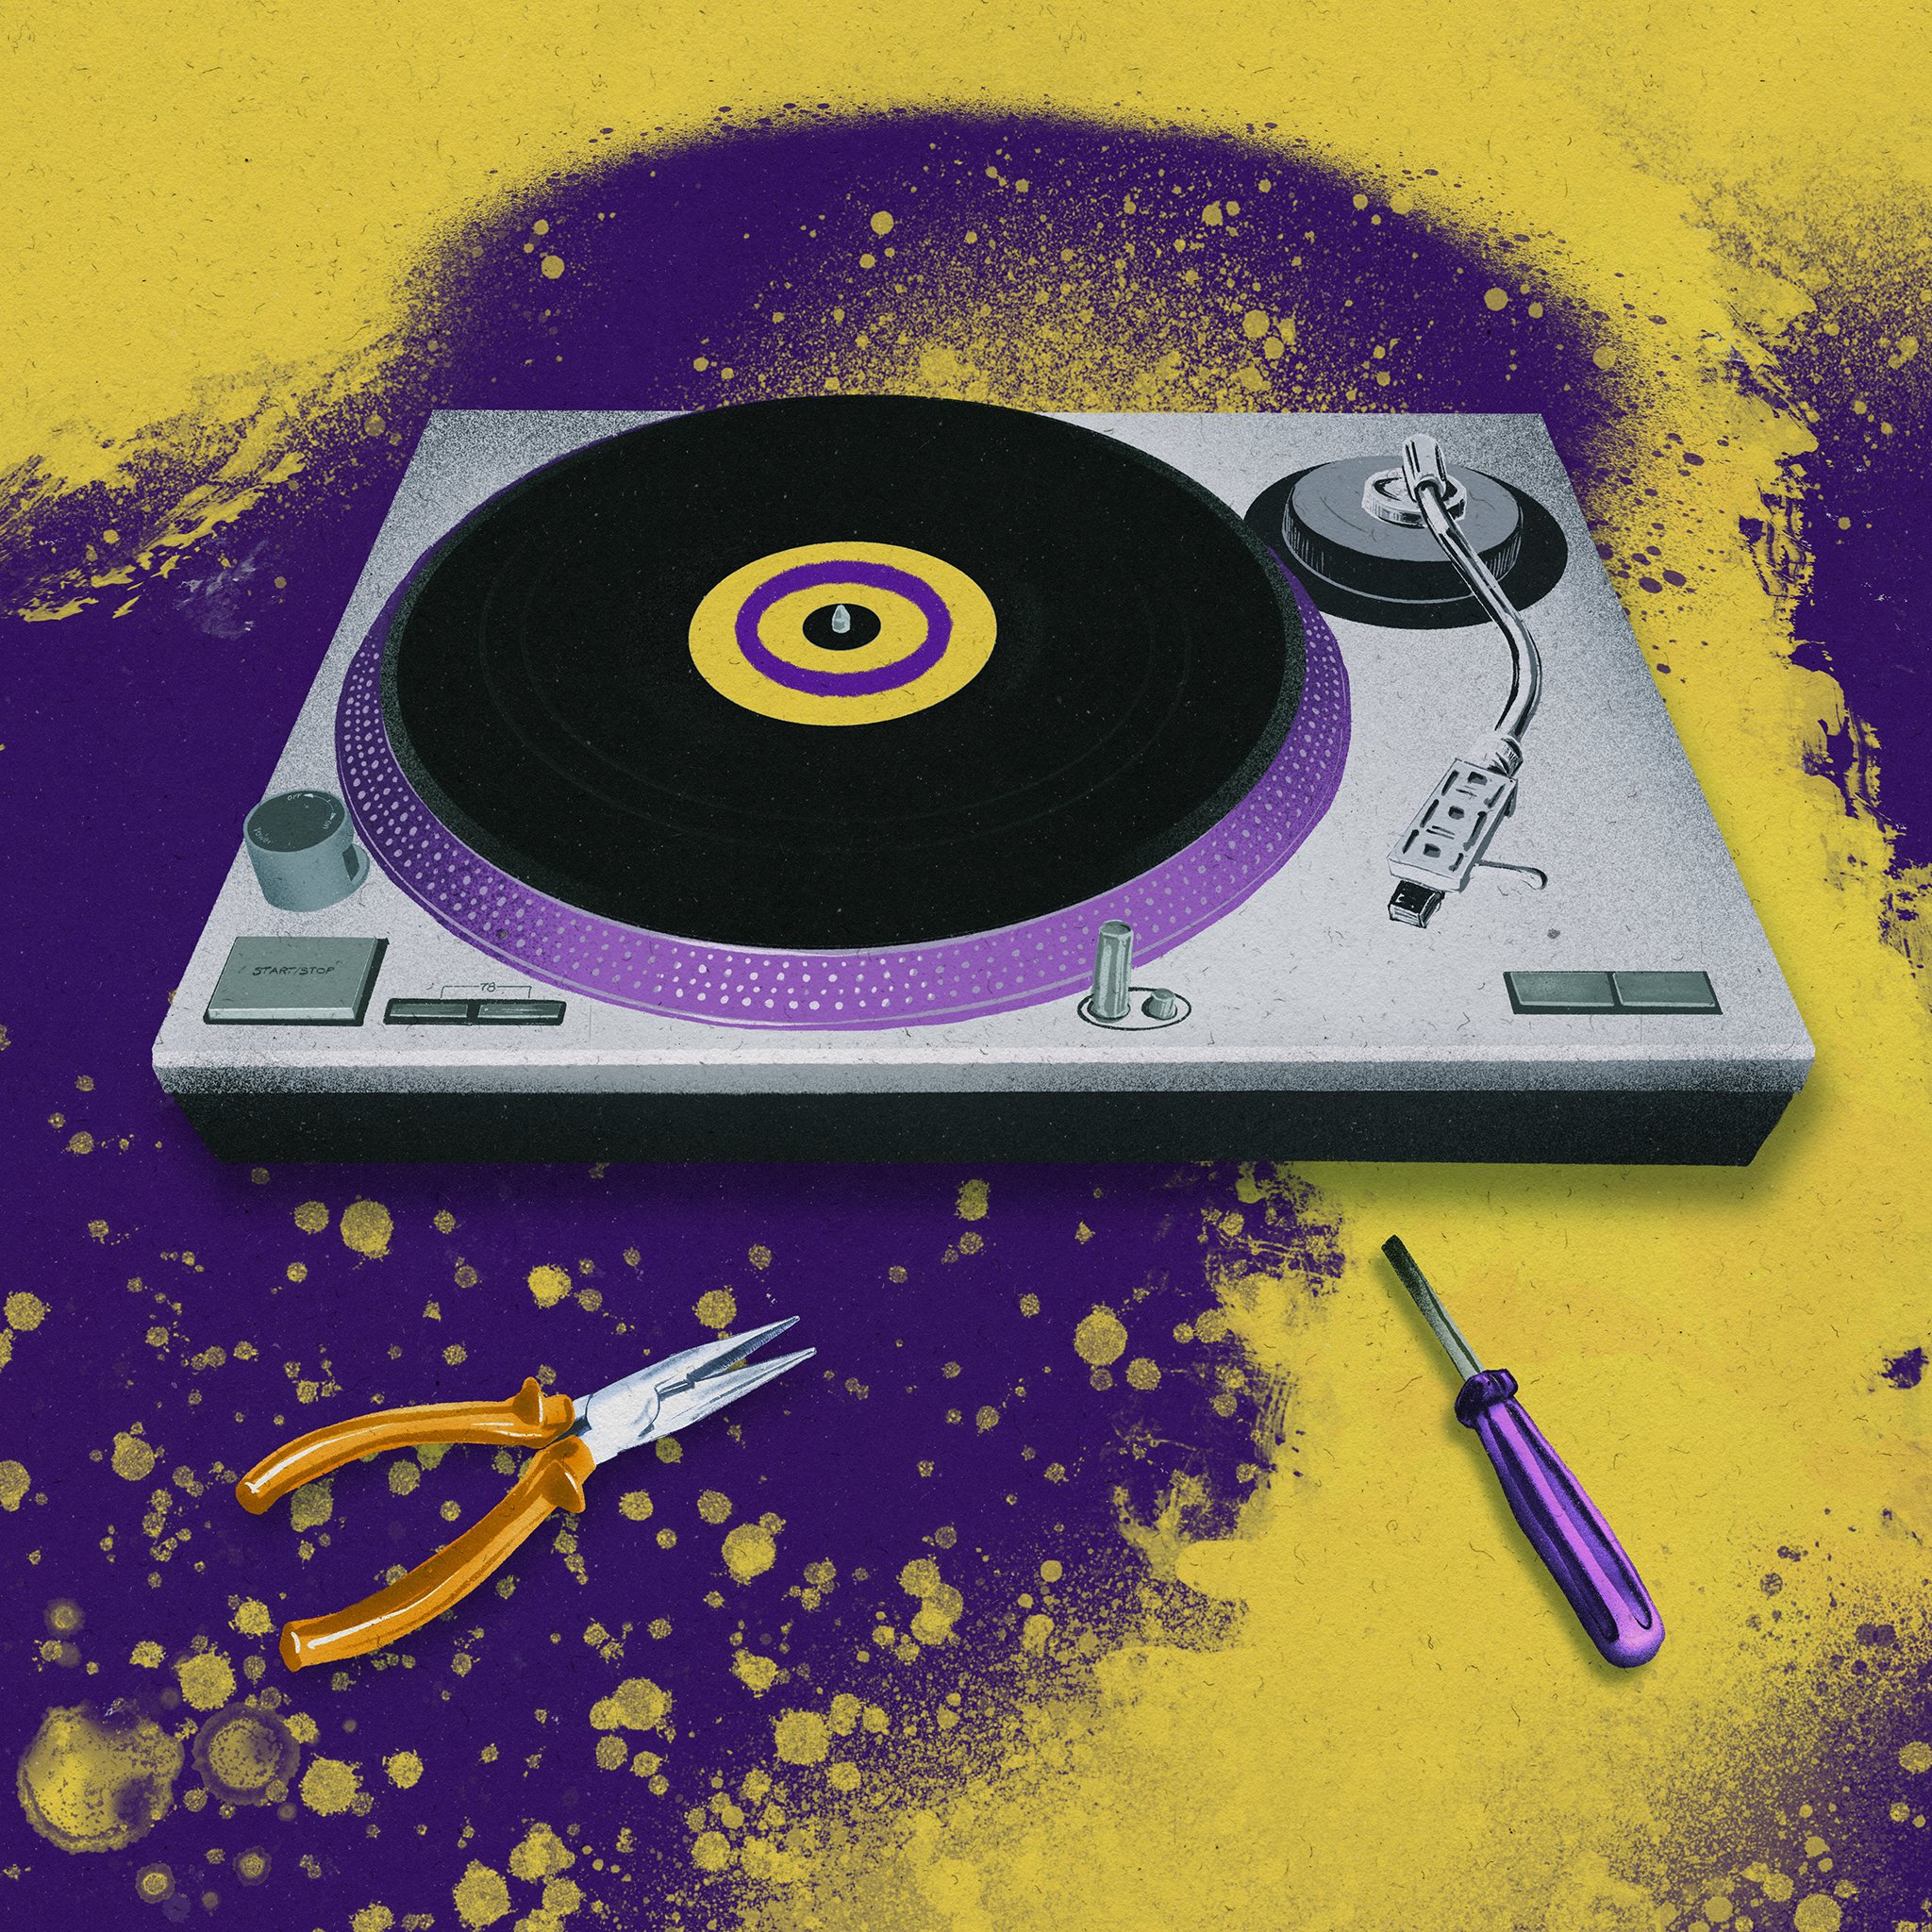 Illustration of Record player in yellow and purple